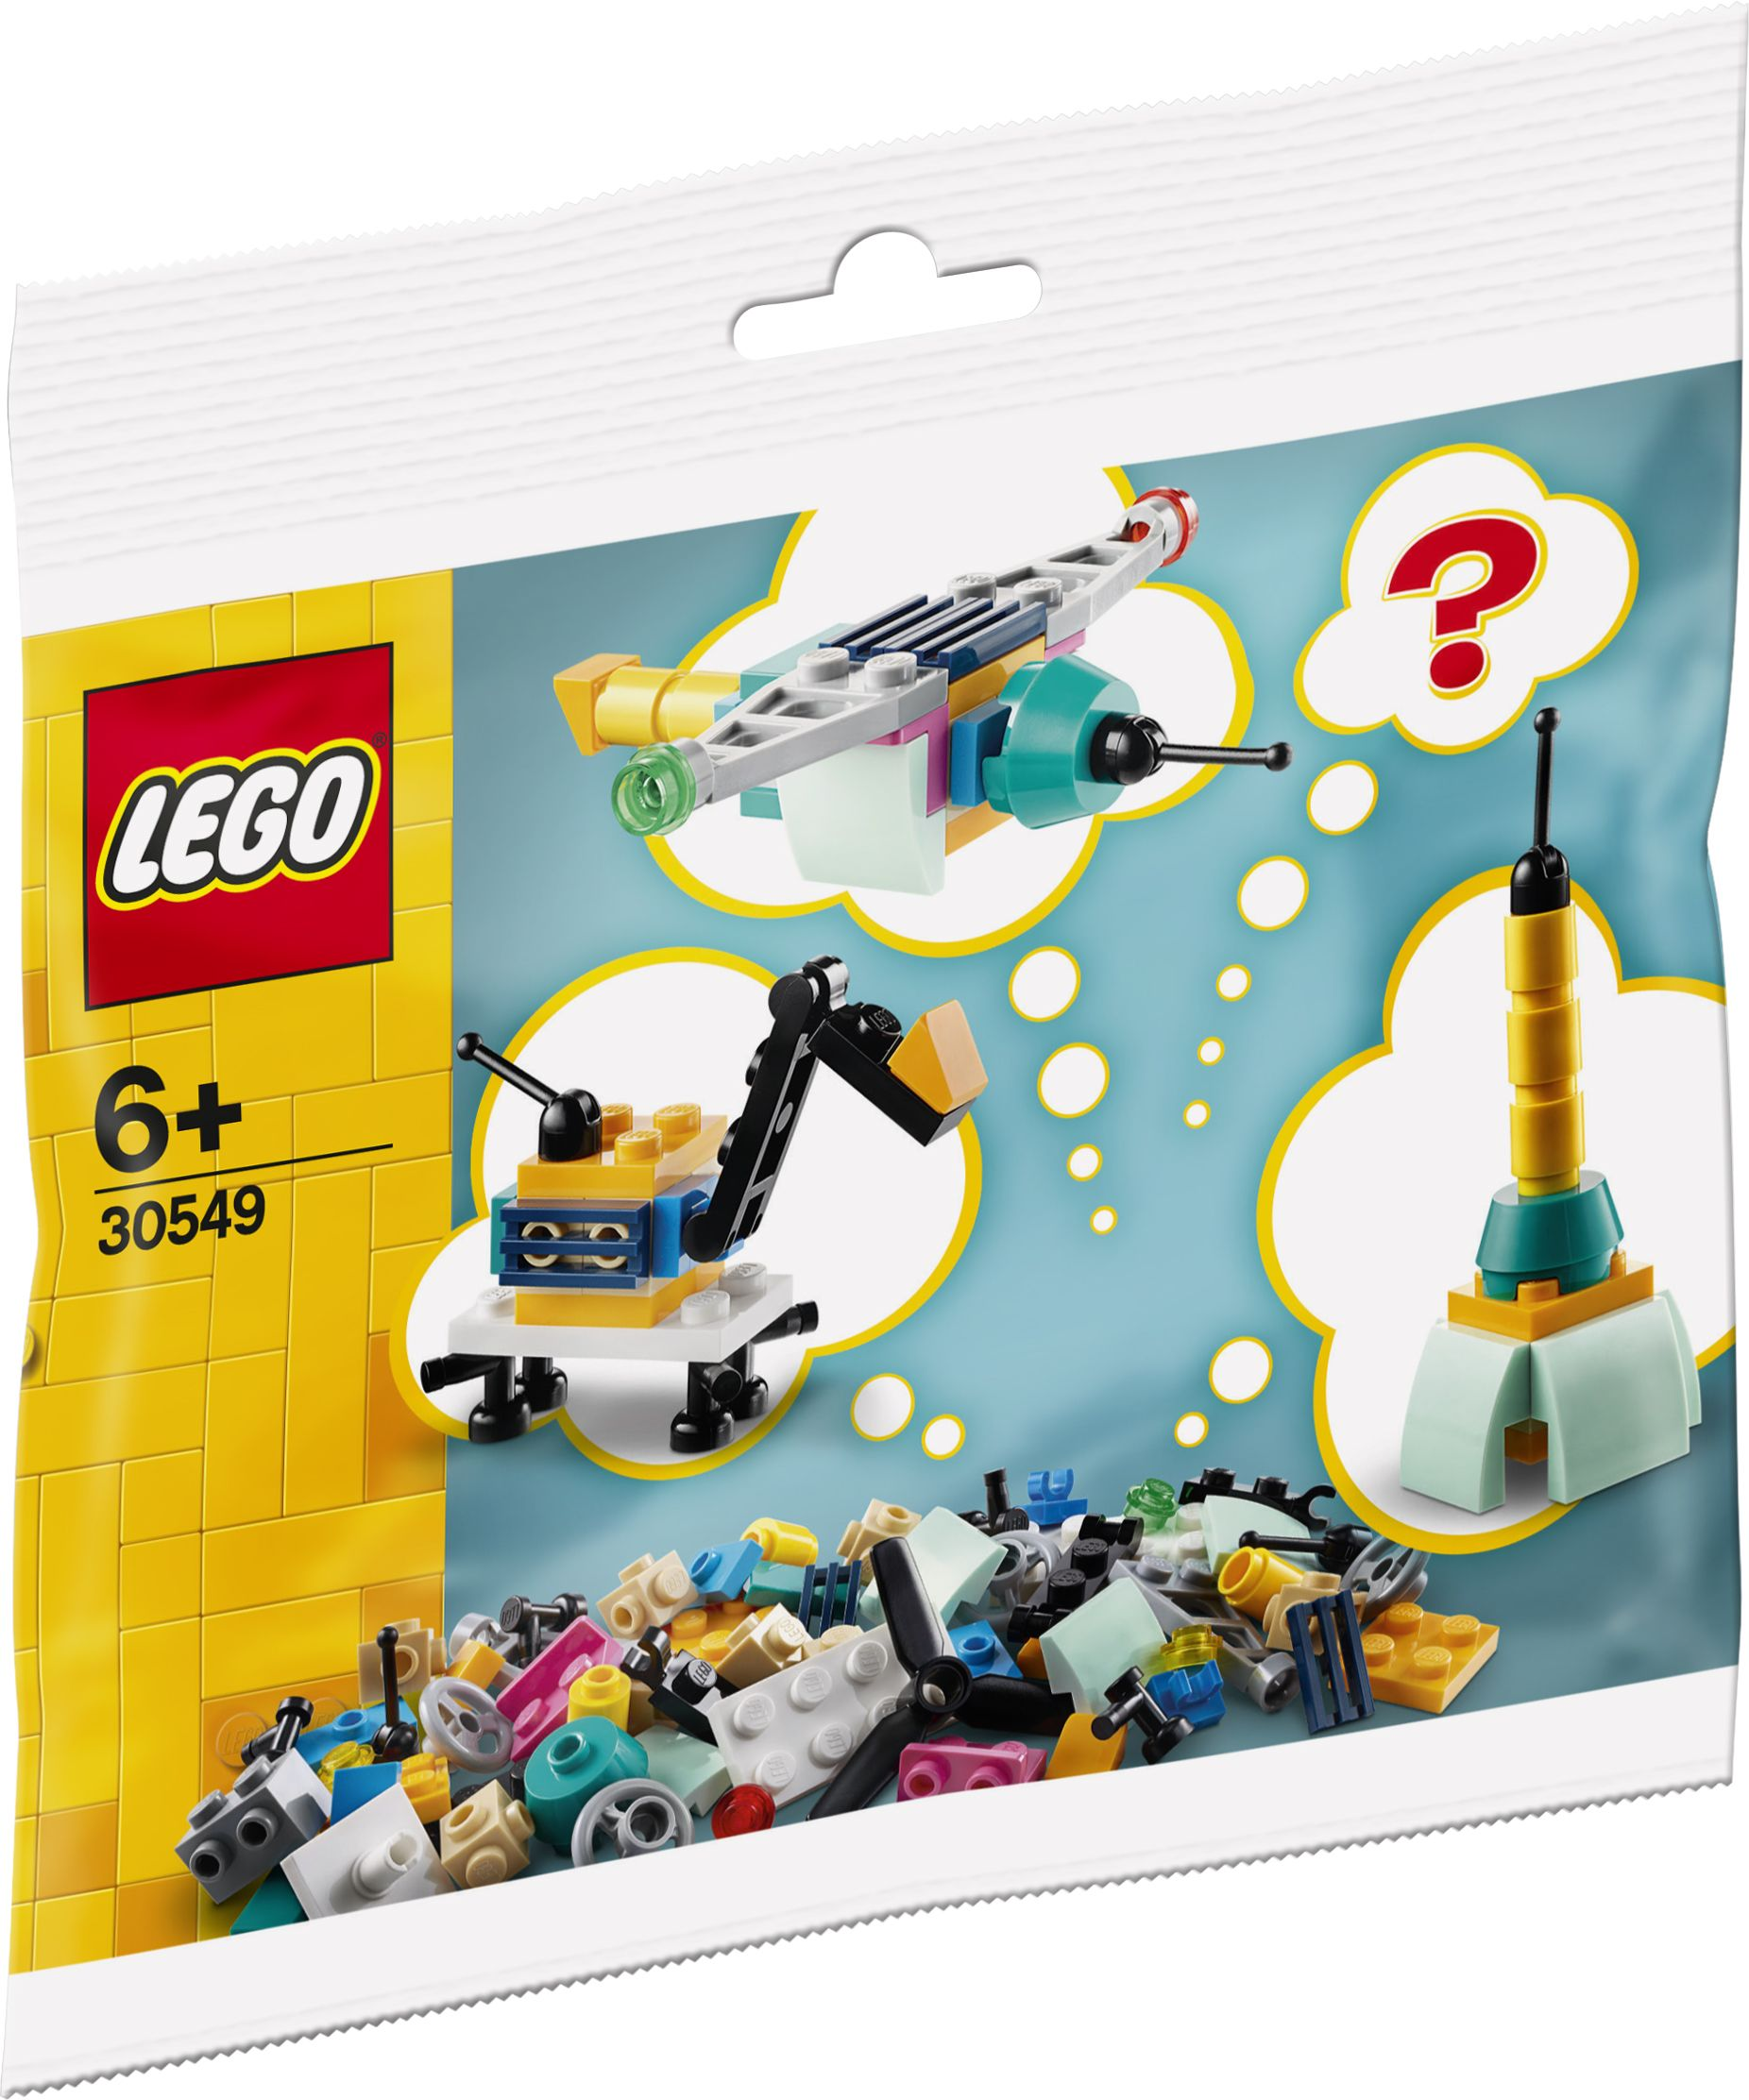 LEGO Creator 30549 Build Your Own Vehicles - Make it Yours